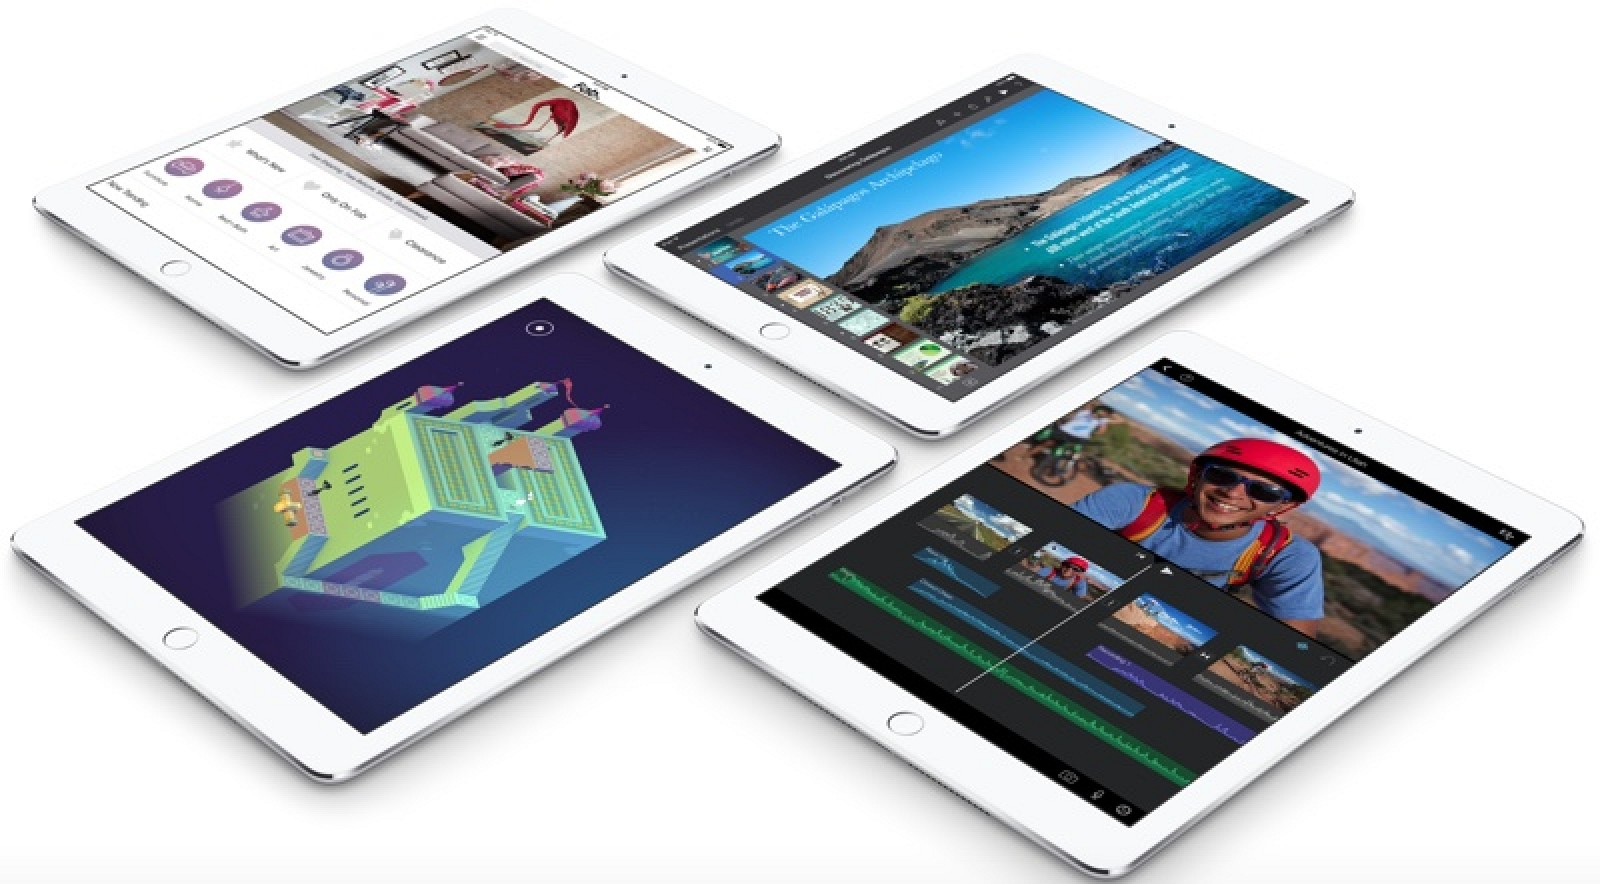 Buyers Guide Discounts On Ipad Mini 3 Retina Macbook Pro Apple 105 512gb New Gold Wifi Only Accessories And More Macrumors